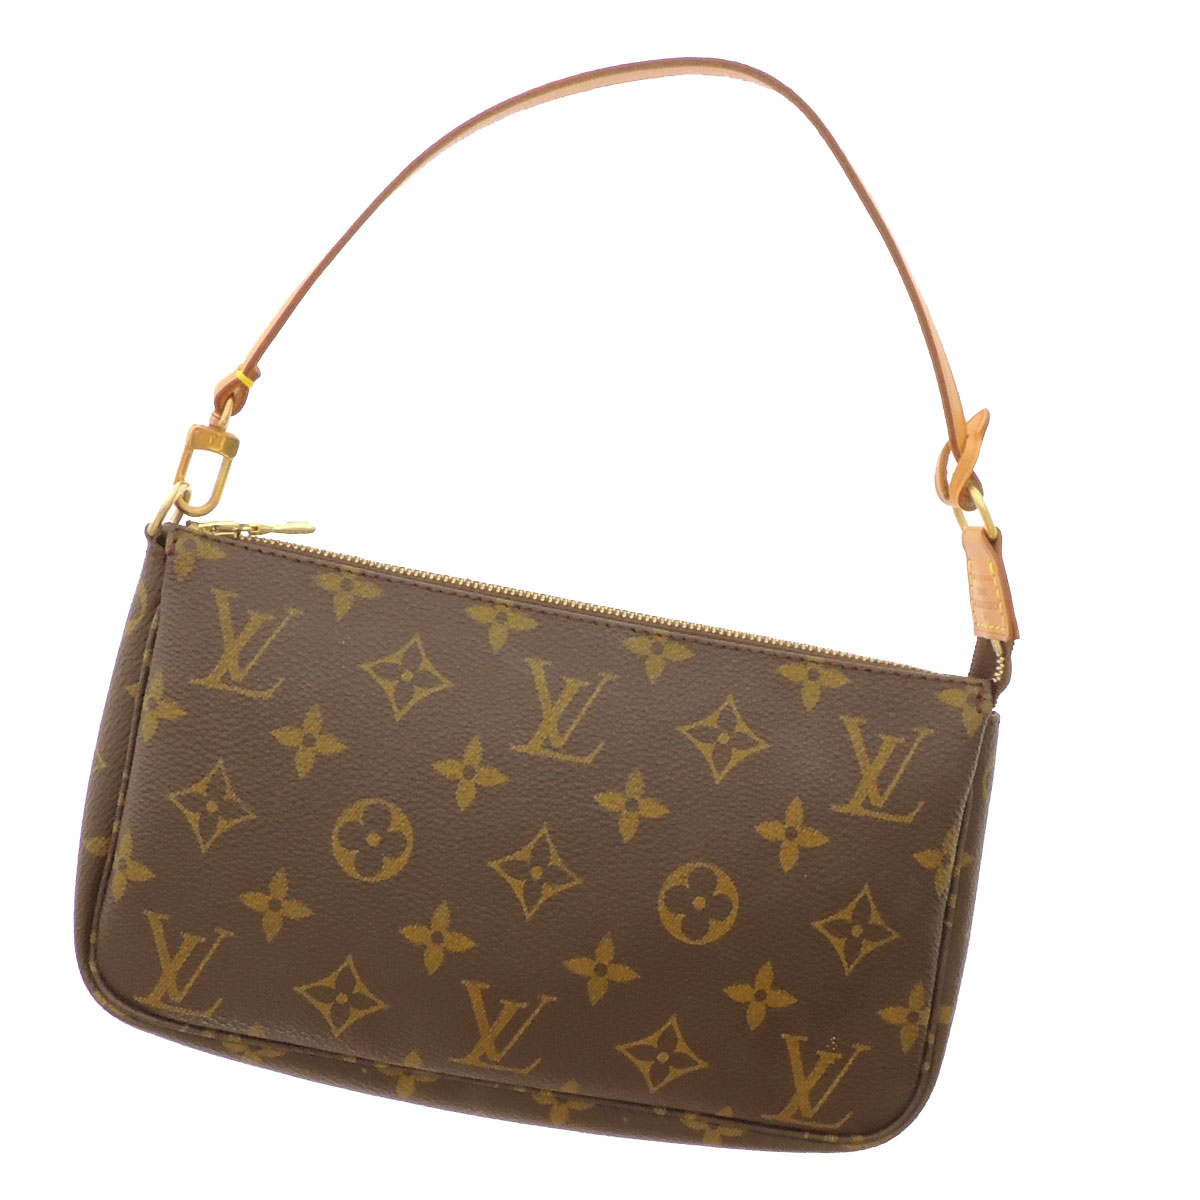 LOUIS VUITTON ポシェットアクセソワール M51980 accessories porch monogram canvas Lady's fs3gm